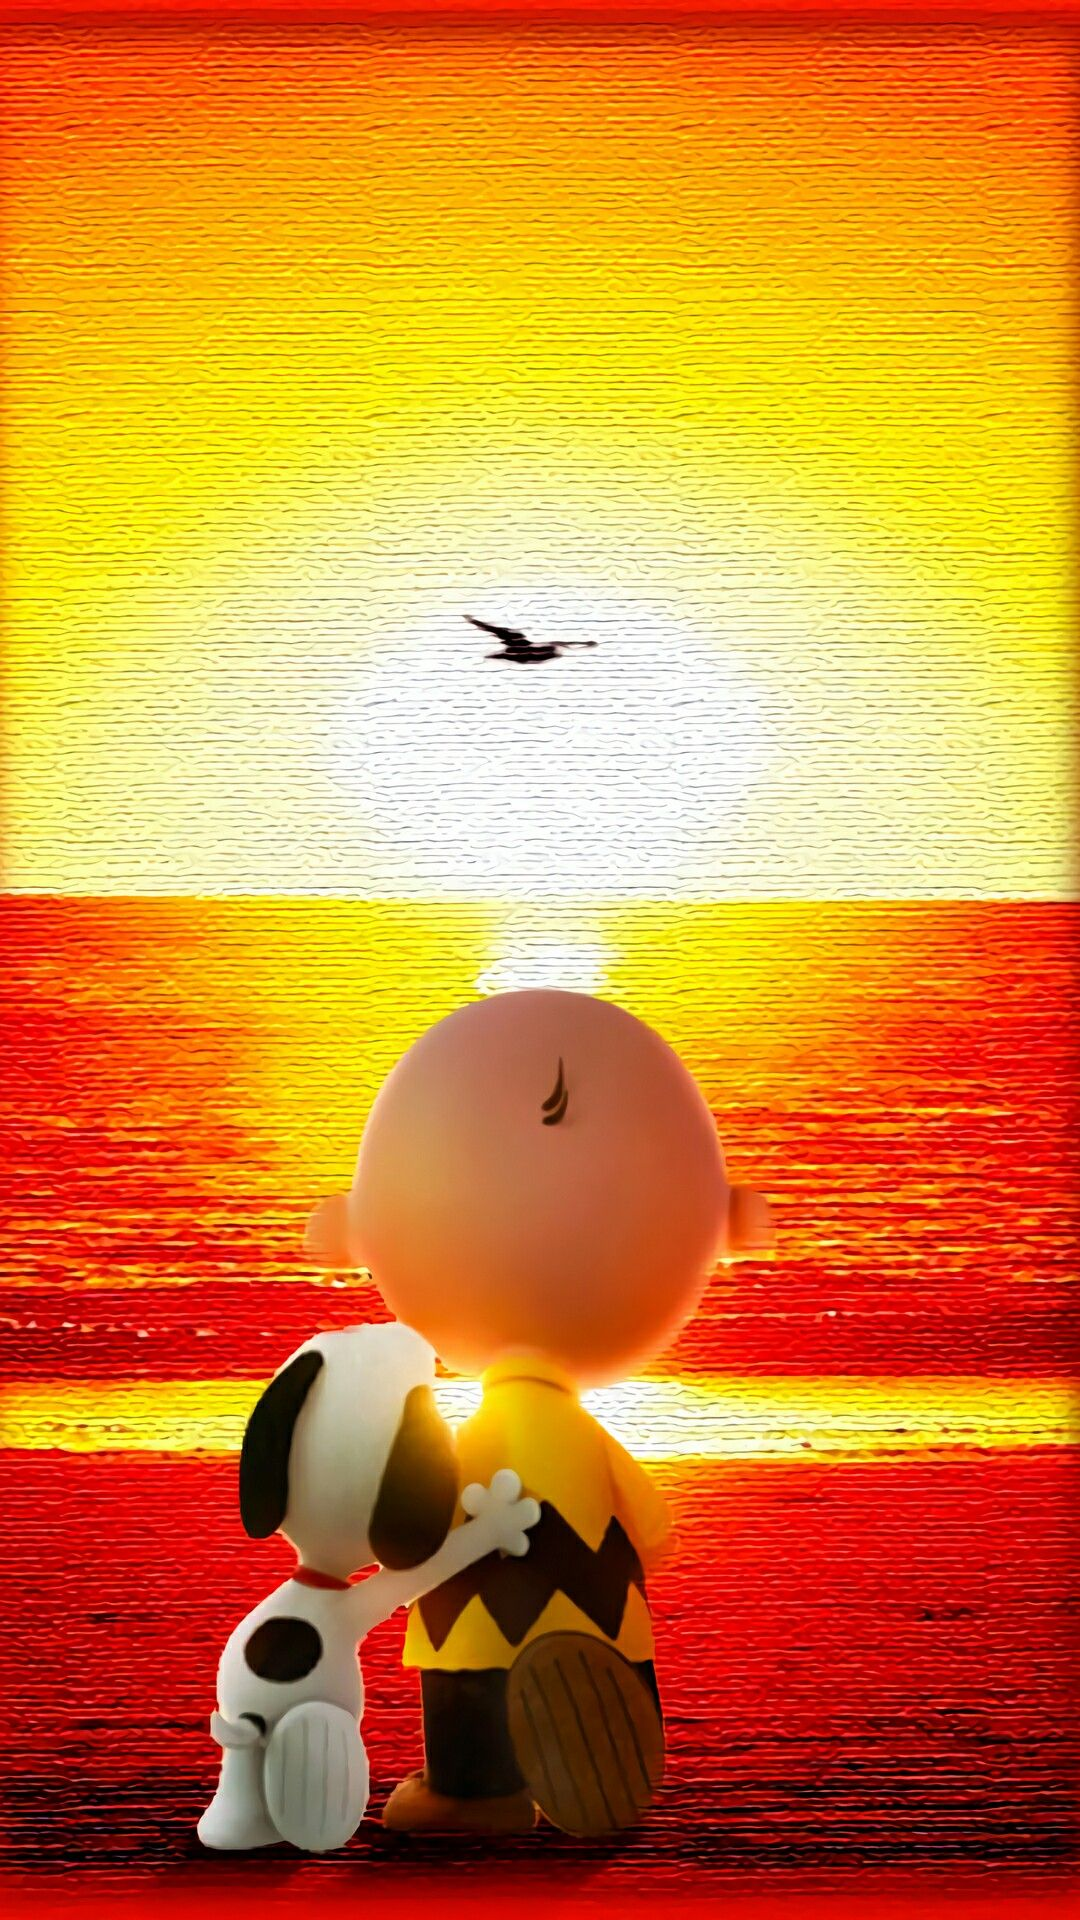 Snoopy Snoopy Wallpaper Snoopy Pictures Snoopy Love